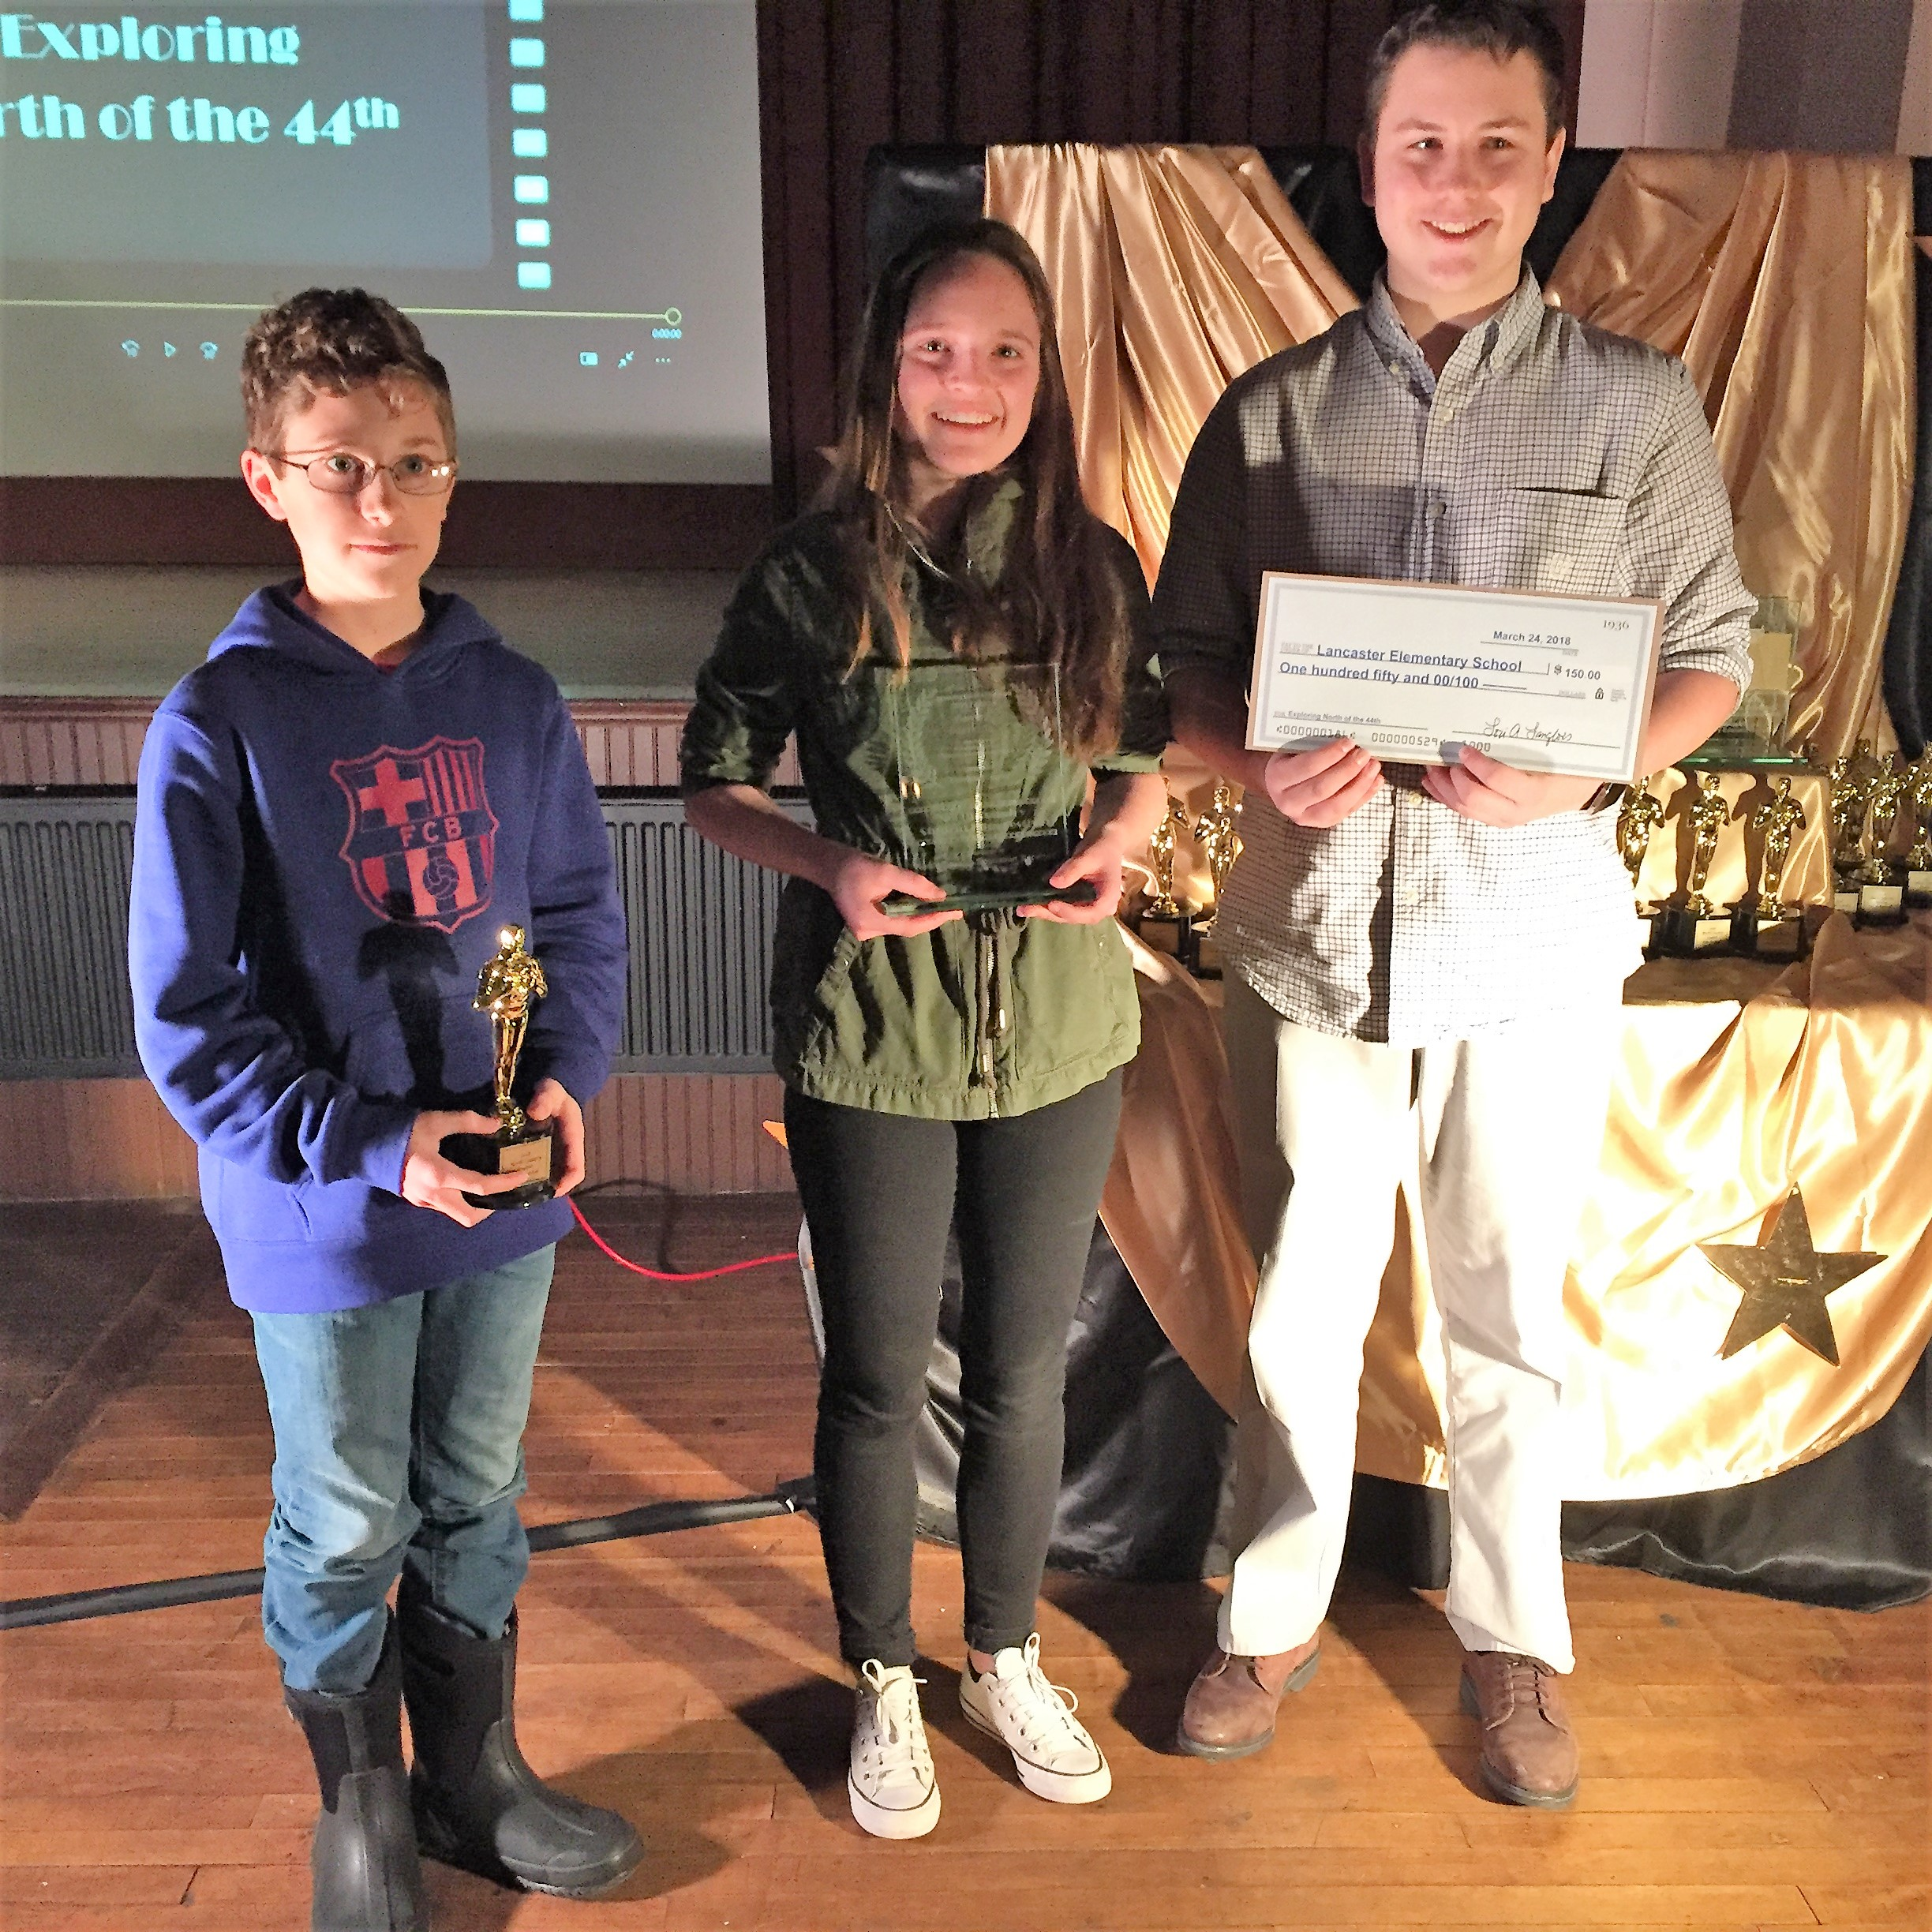 """Winner (tie): Exploring North of the 44th   """" Adventure into the Snow """" by Lancaster Elementary"""